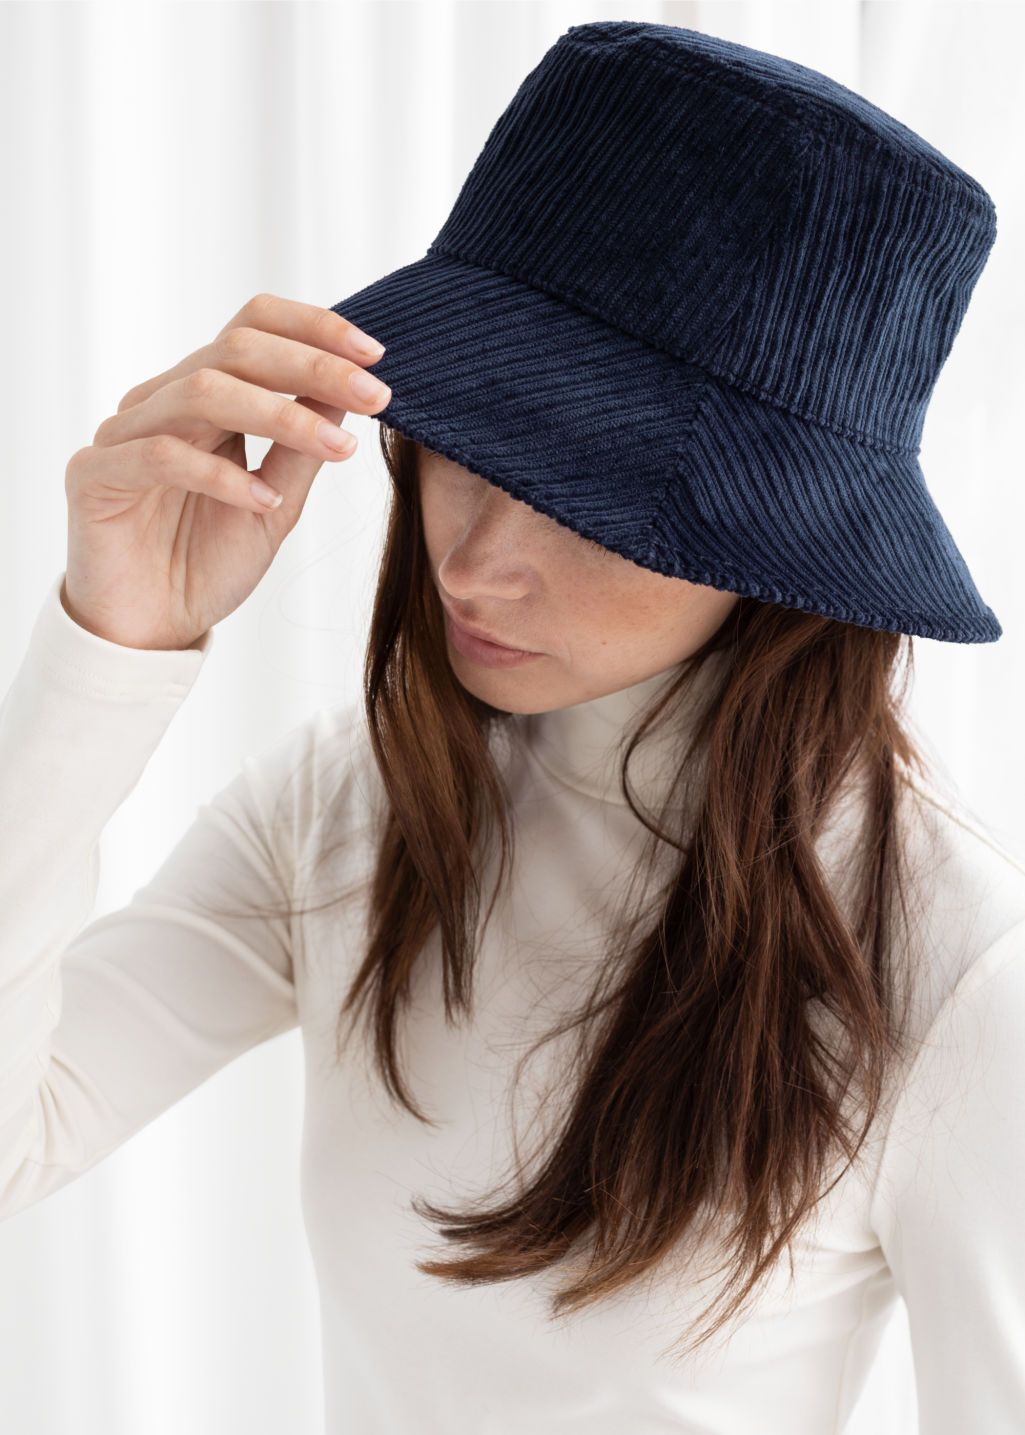 Corduroy Bucket Hat Corduroy Bucket Hat Hat Fashion Outfits With Hats